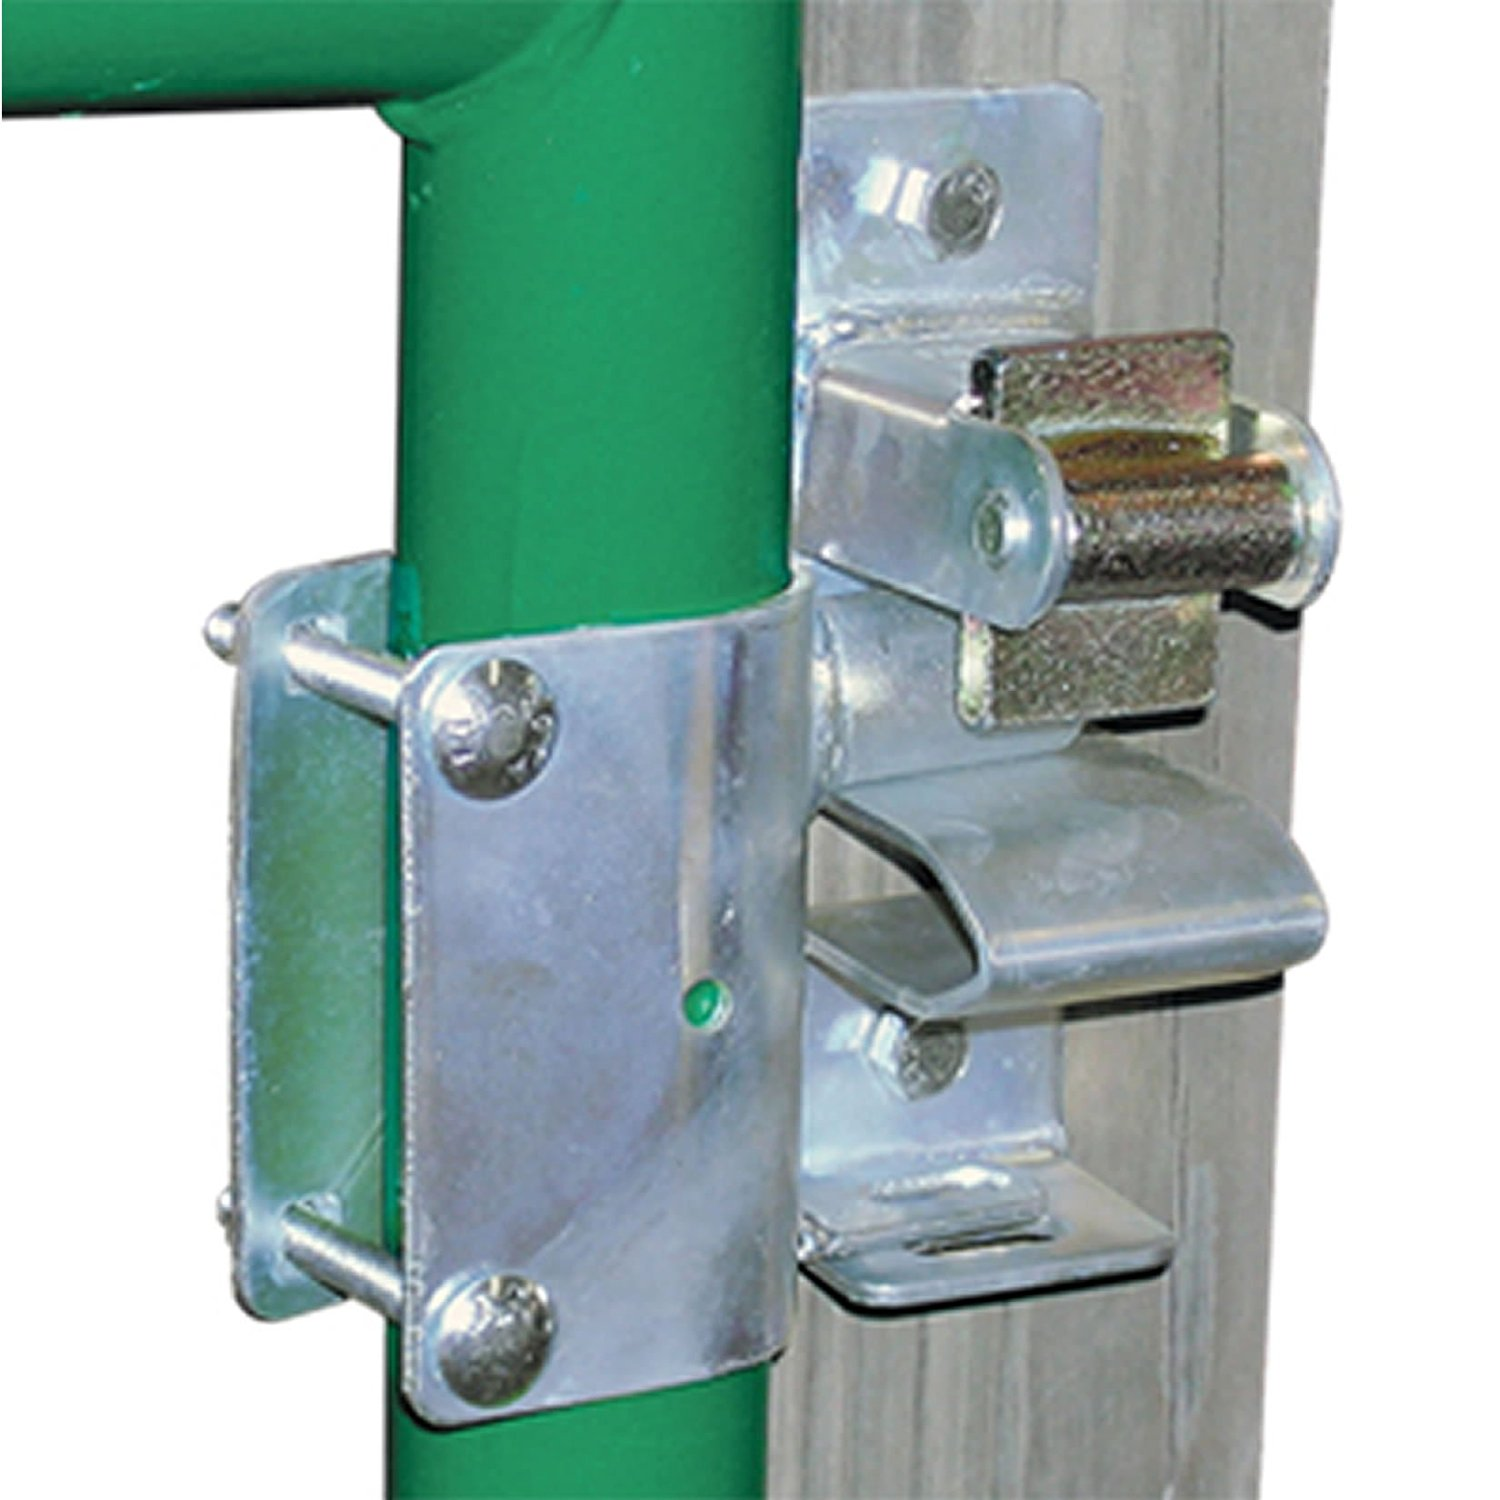 Lockable 1 Way Livestock Gate Latch One Handed Operation